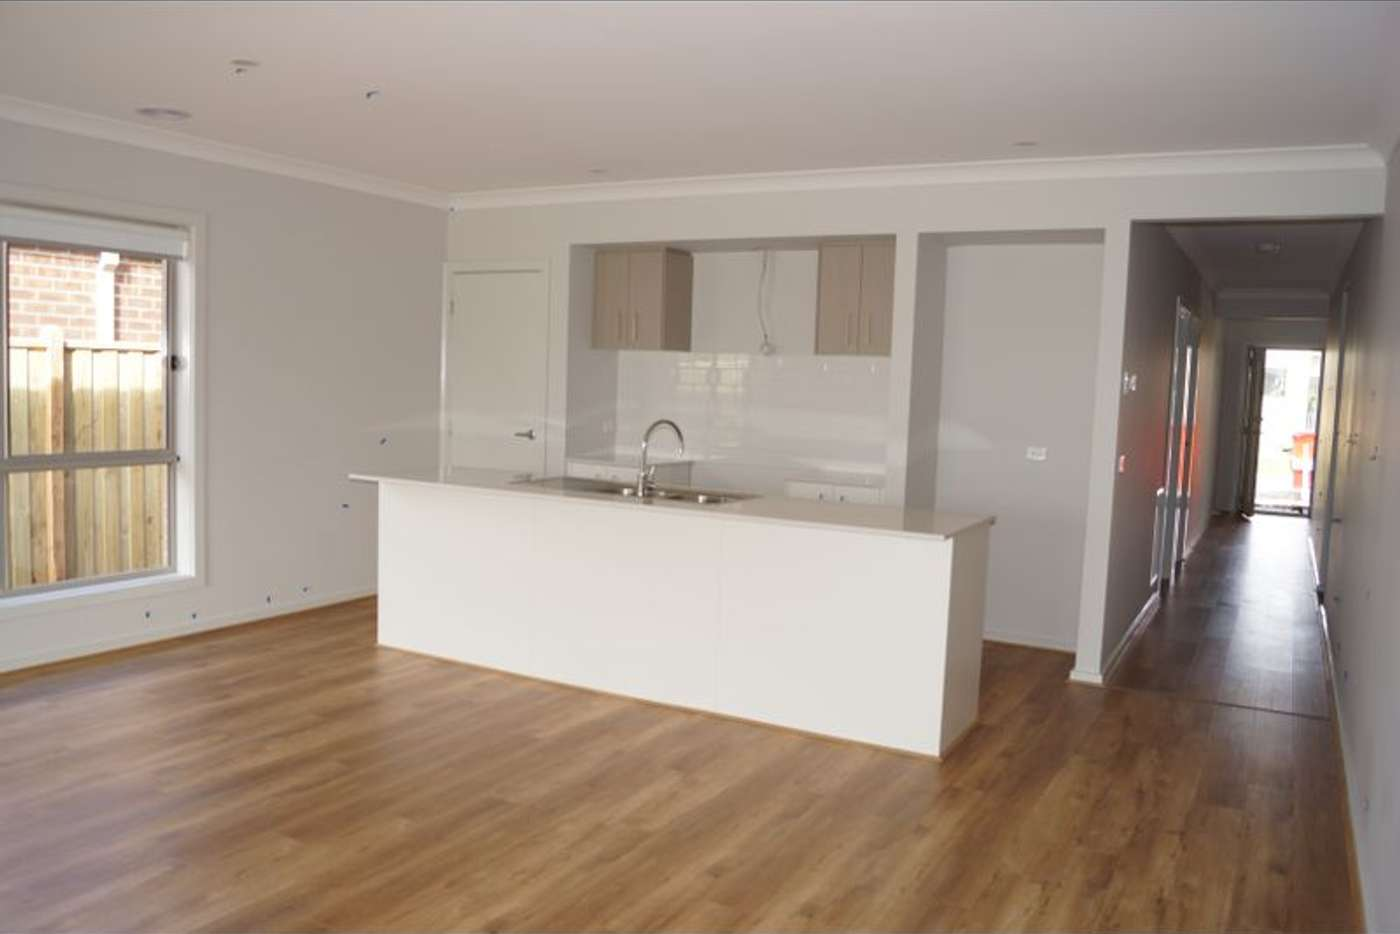 Main view of Homely house listing, 25 Grabke Avenue, Clyde North VIC 3978